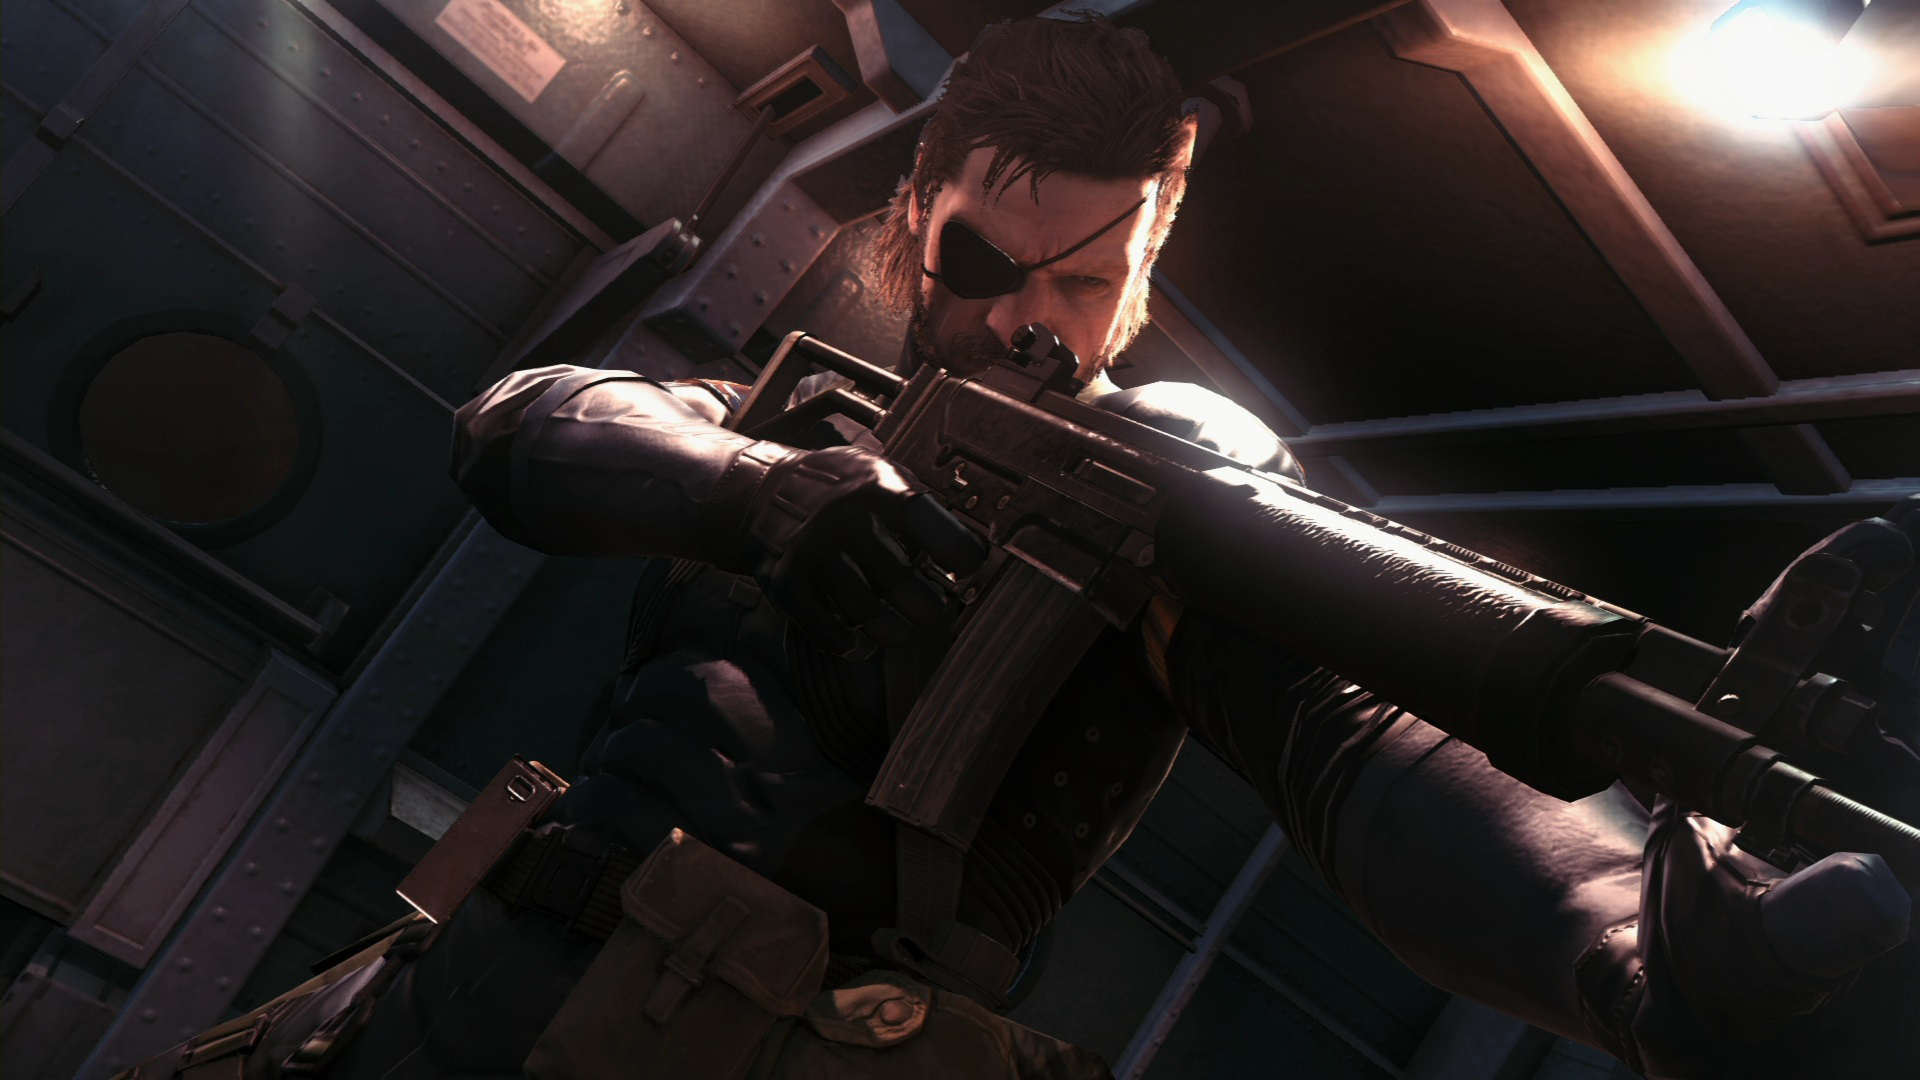 A Russian defence official has accused Metal Gear of being created by US spy agencies